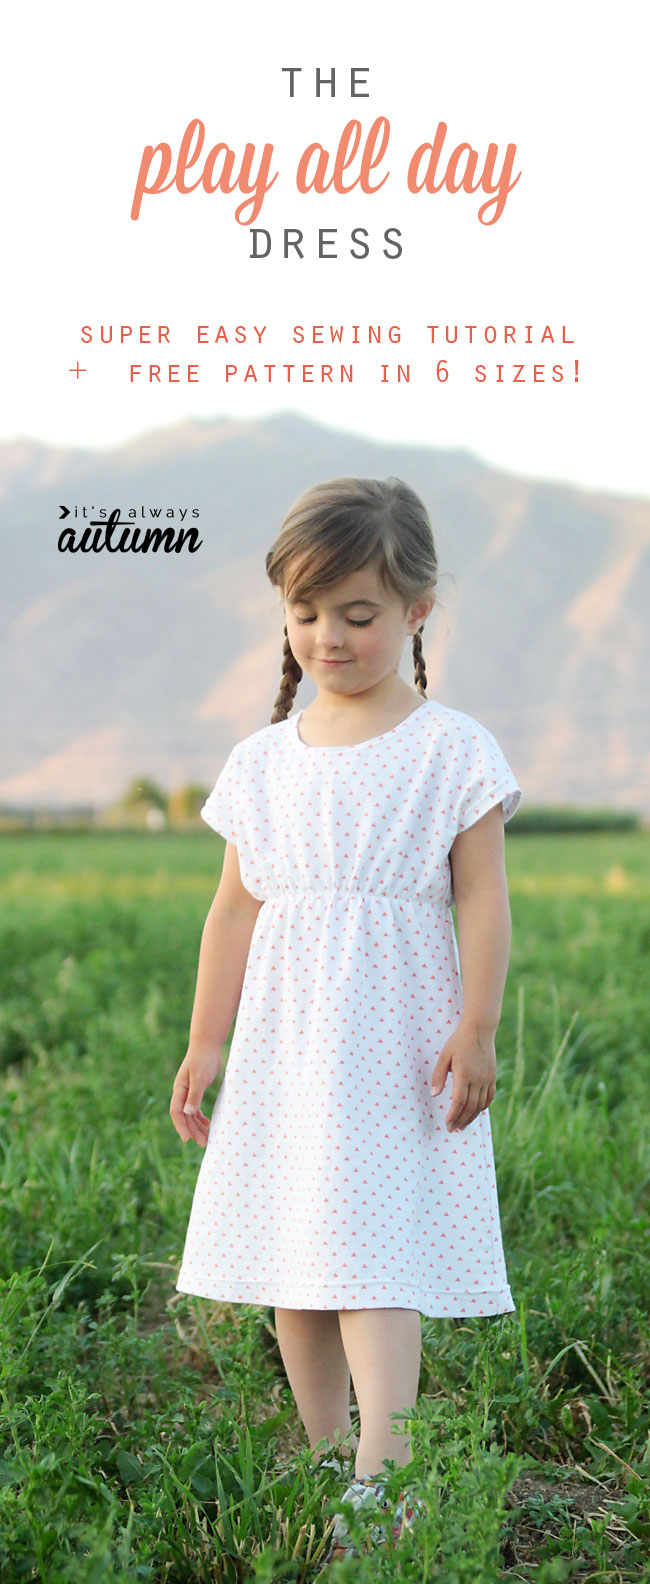 Simple Knit Dress Pattern The Play All Day Dress Free Girls Dress Pattern In 6 Sizes Its